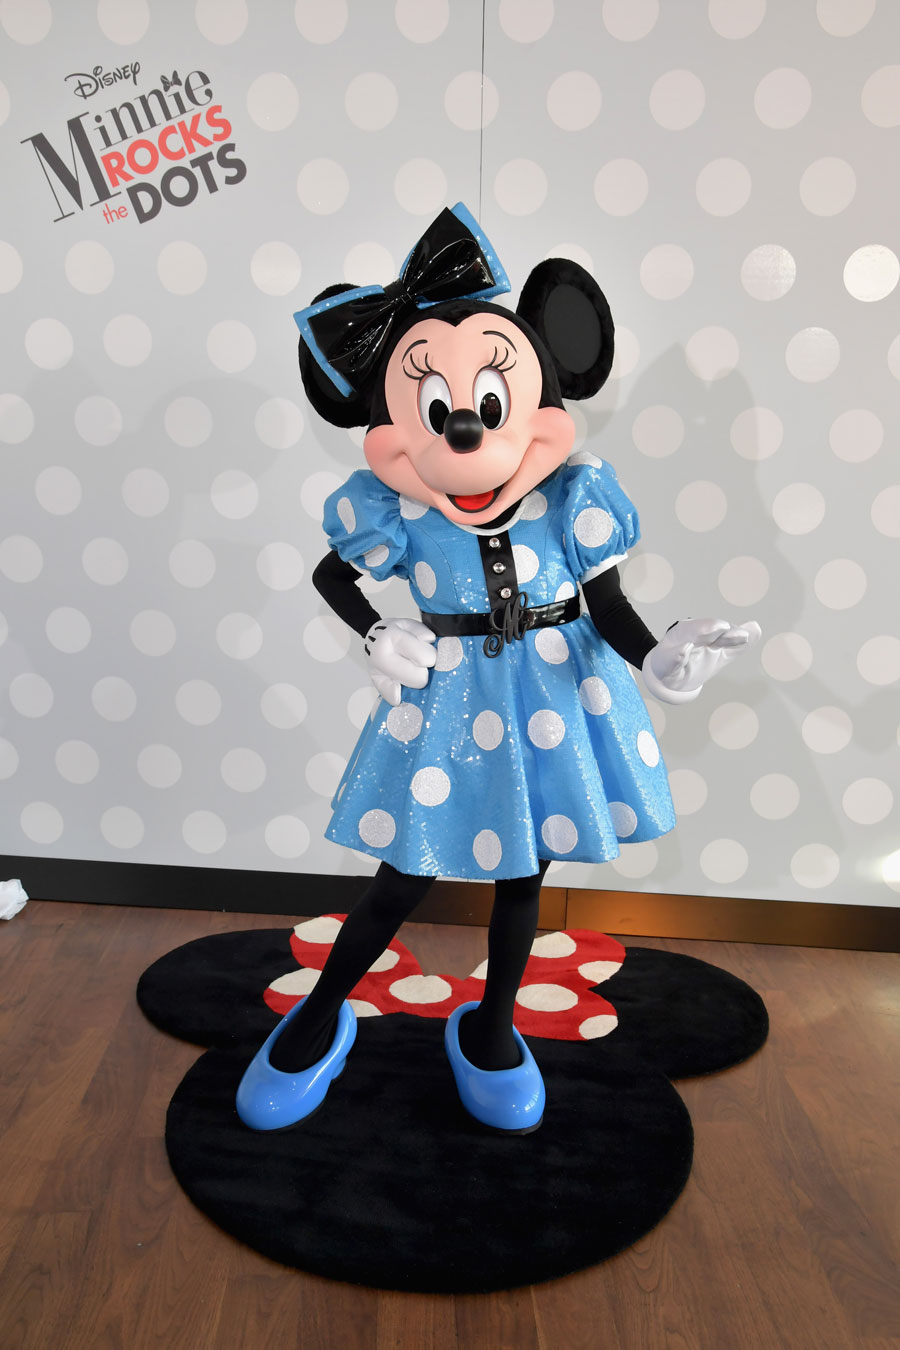 It's Almost Time to #RockTheDots – This Sunday, January 22, at Disney Springs and Downtown Disney!